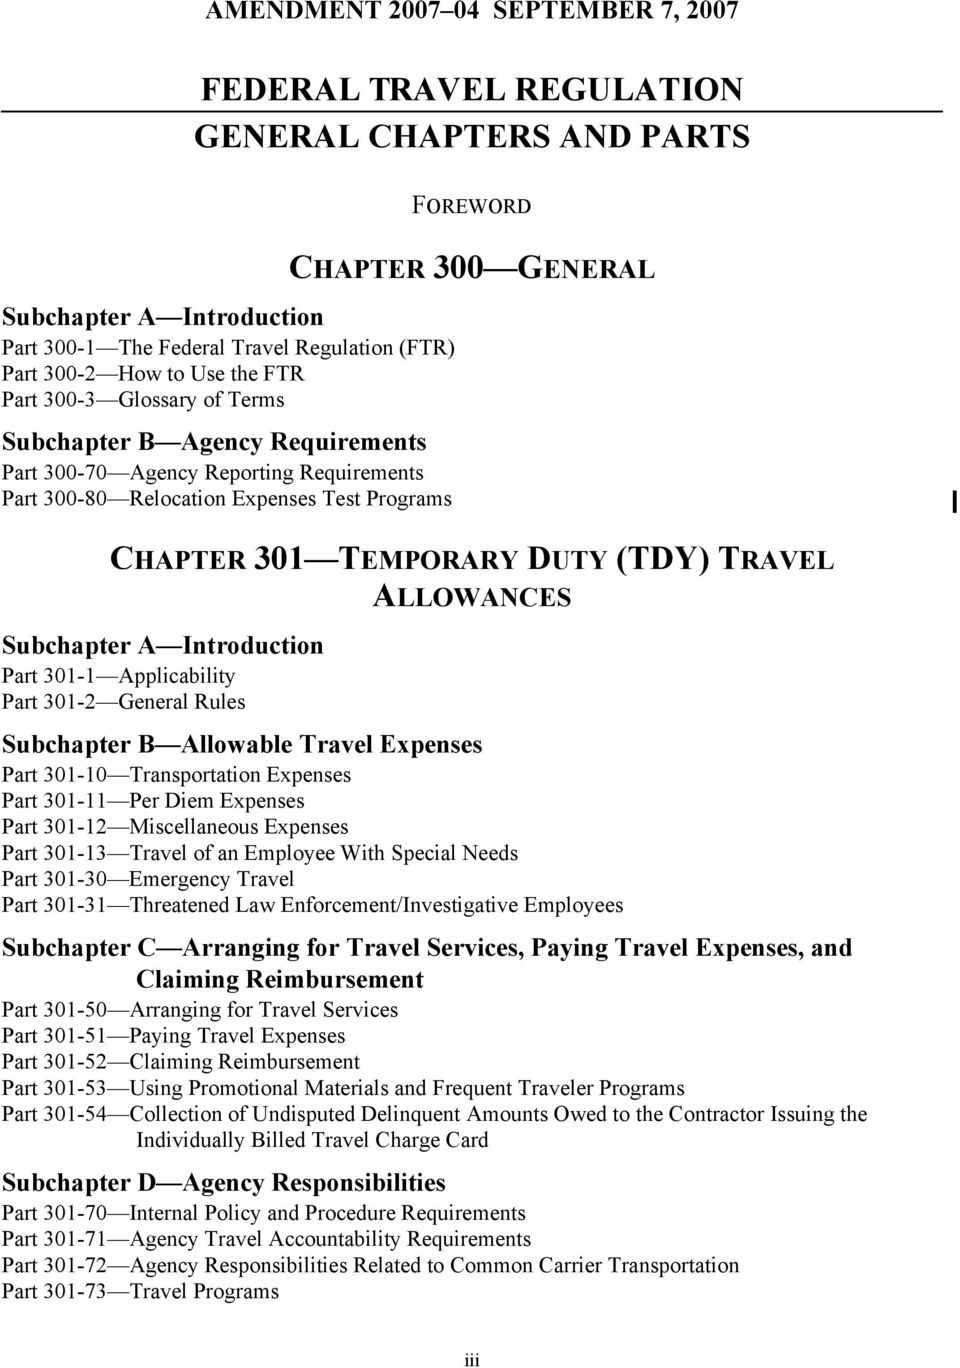 DUTY (TDY) TRAVEL ALLOWANCES Subchapter A Introduction Part 301-1 Applicability Part 301-2 General Rules Subchapter B Allowable Travel Expenses Part 301-10 Transportation Expenses Part 301-11 Per